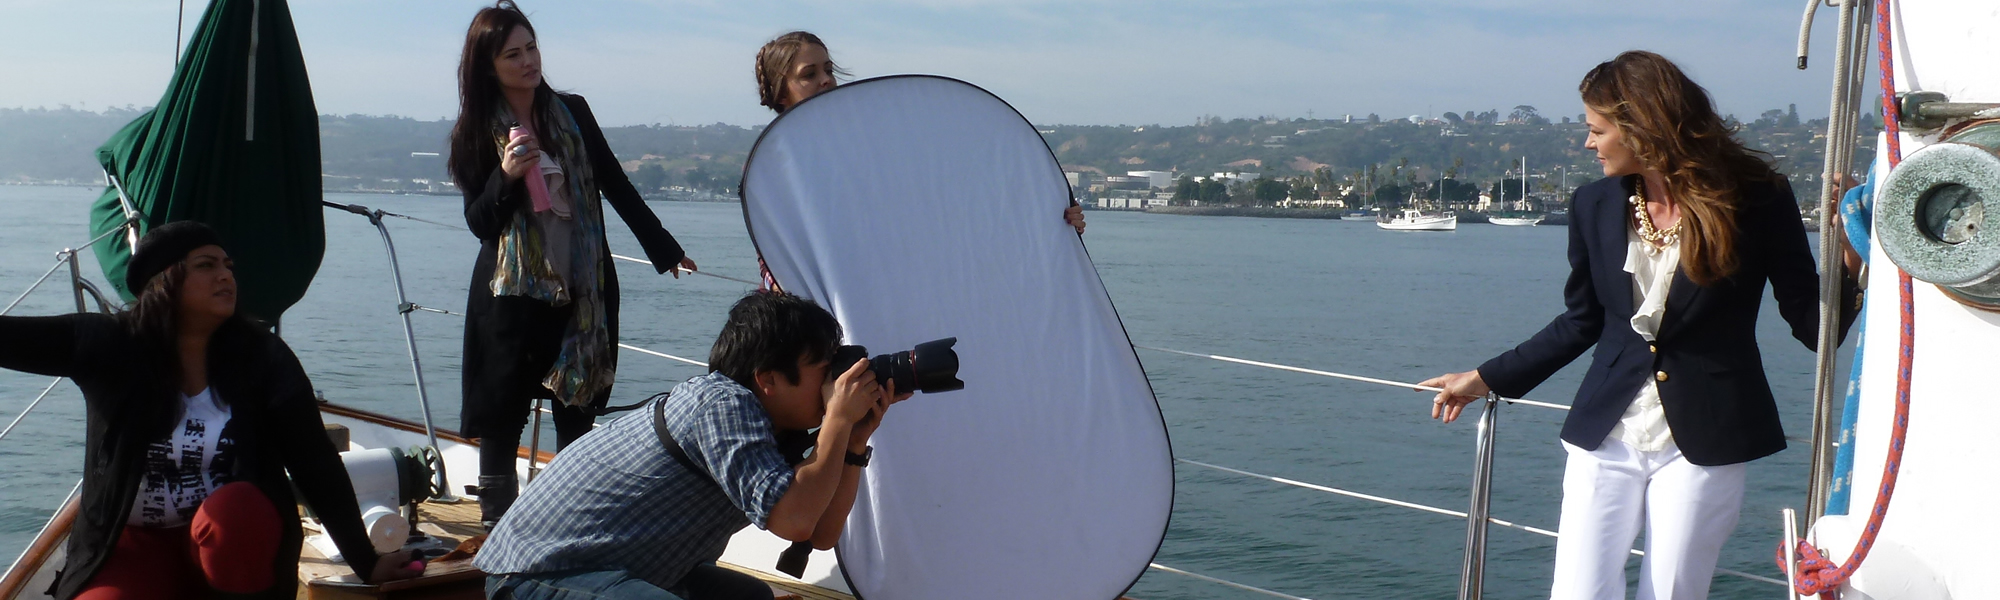 Charter a photo shoot at sea in San Diego on JADA - classic wooden sailboat